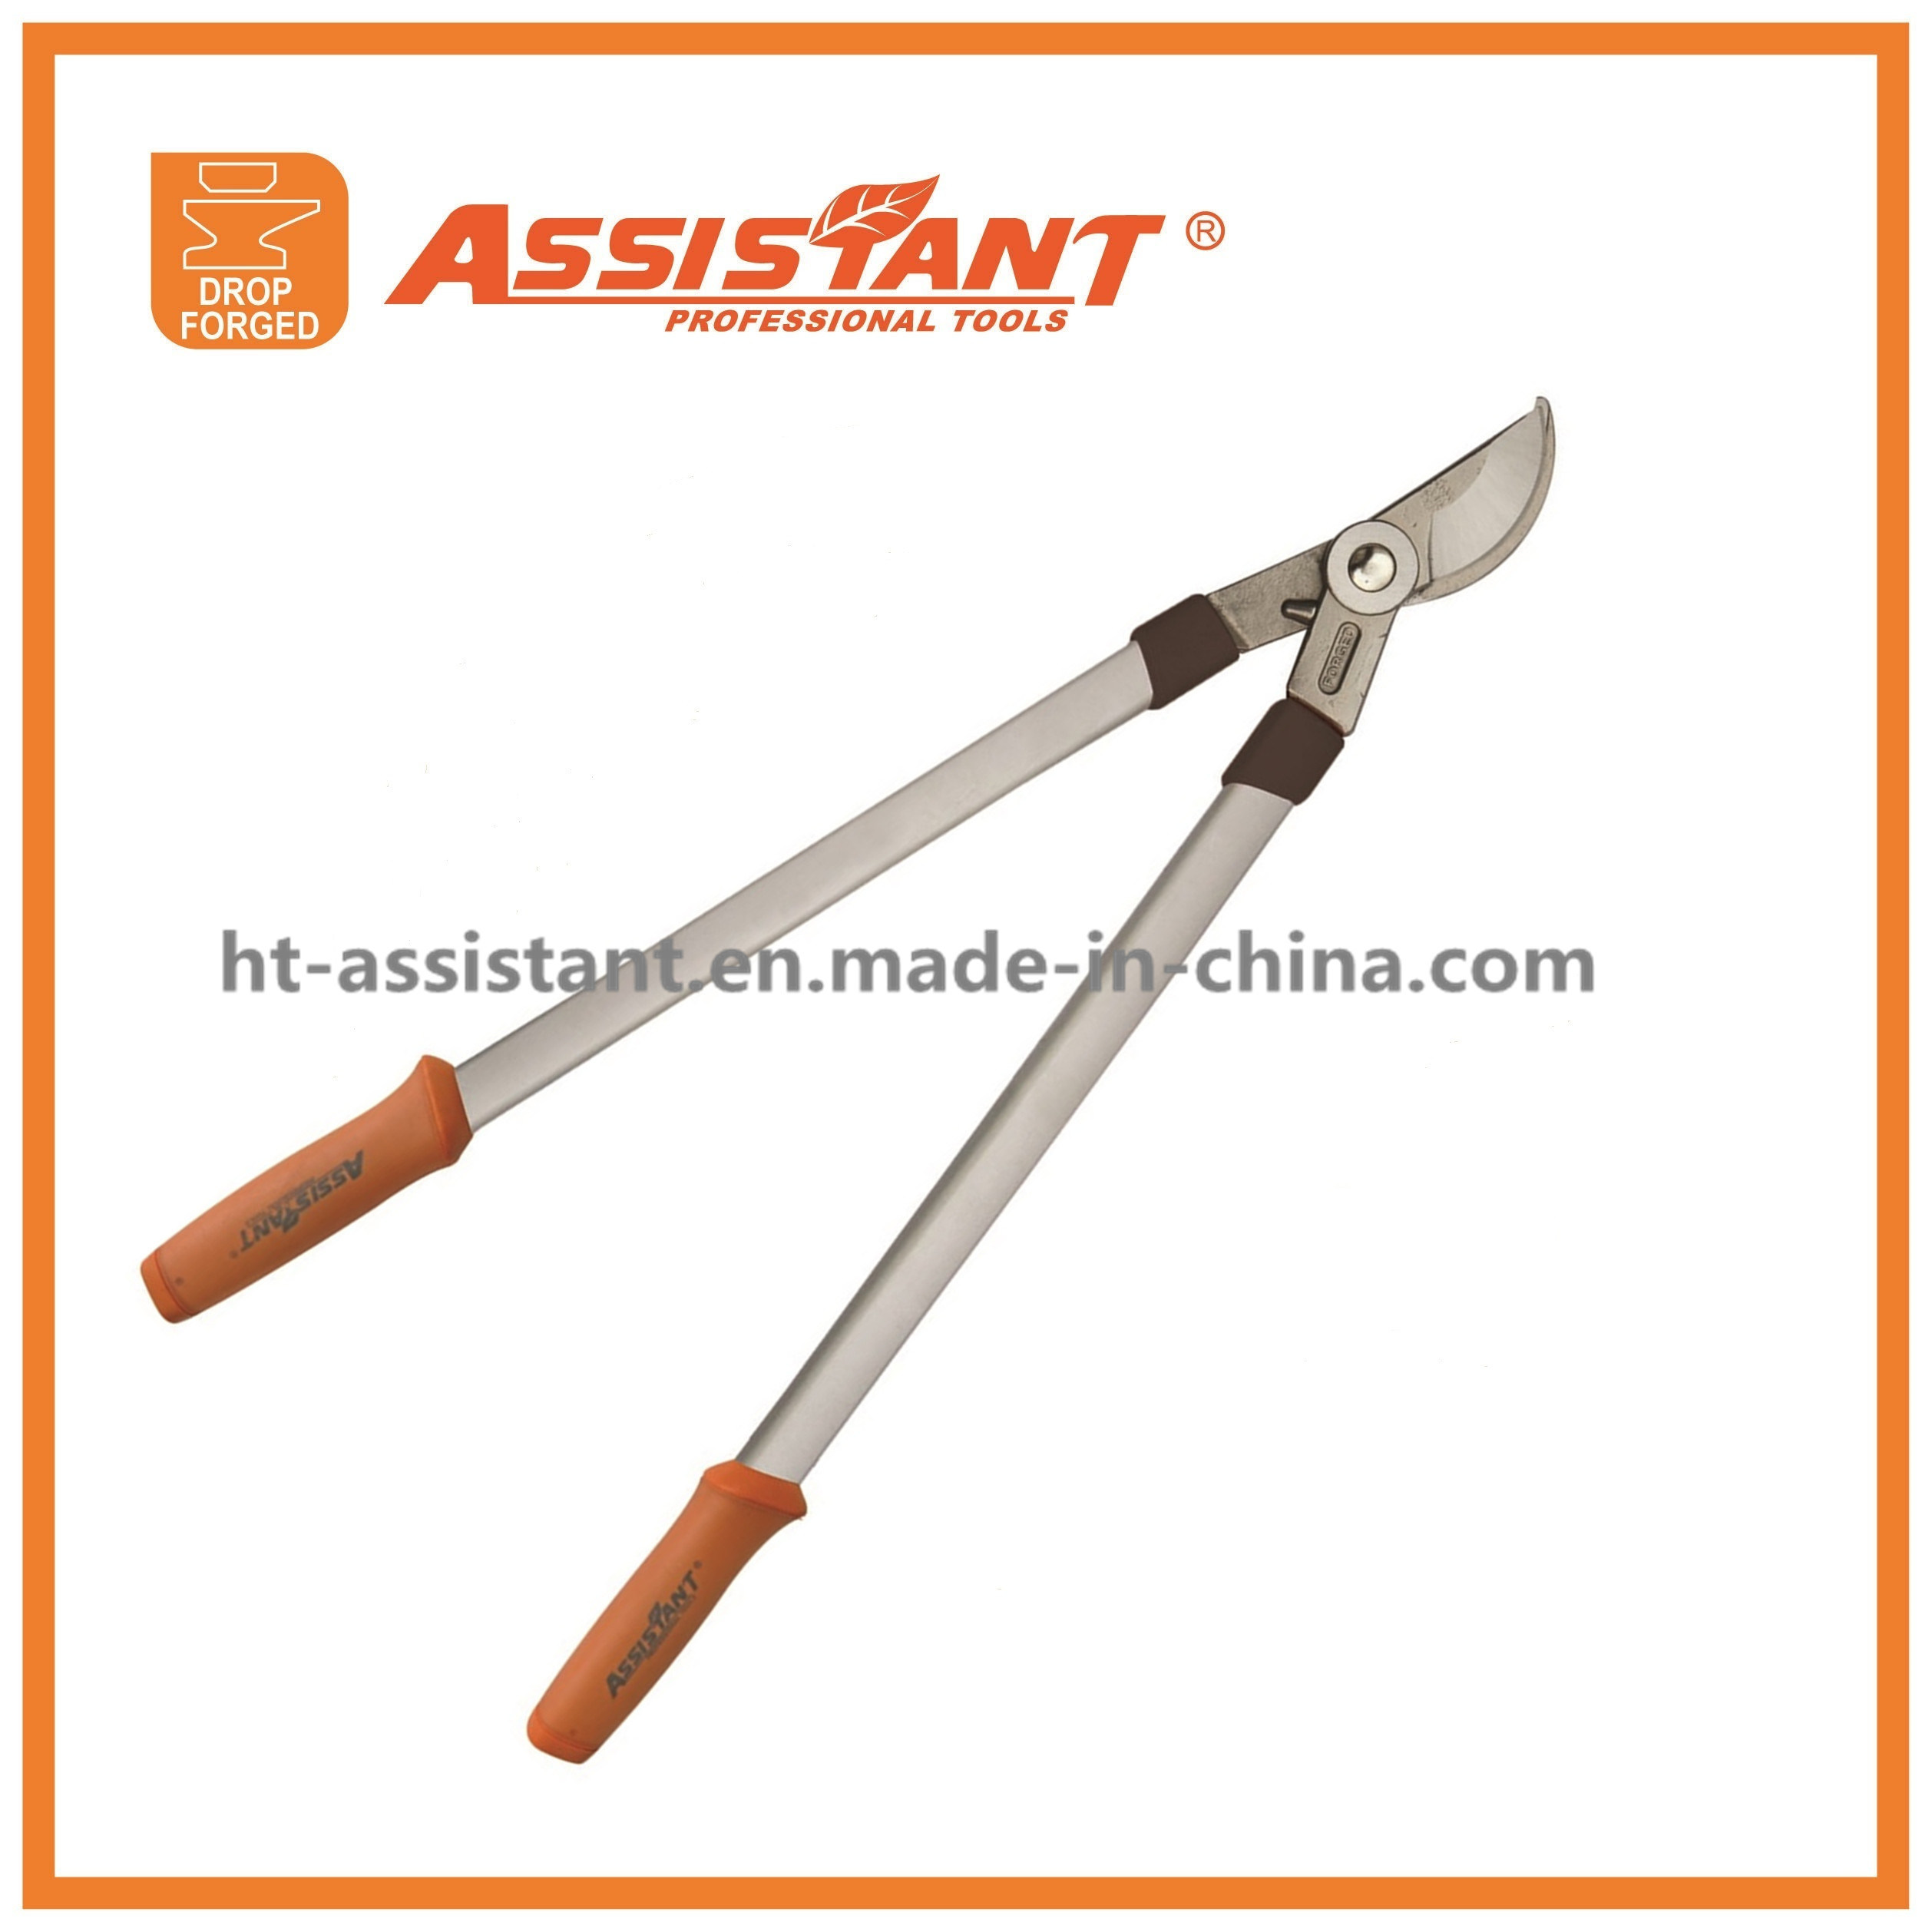 Drop Forged PTFE Coated Blade Bypass Loppers with Aluminum Handles